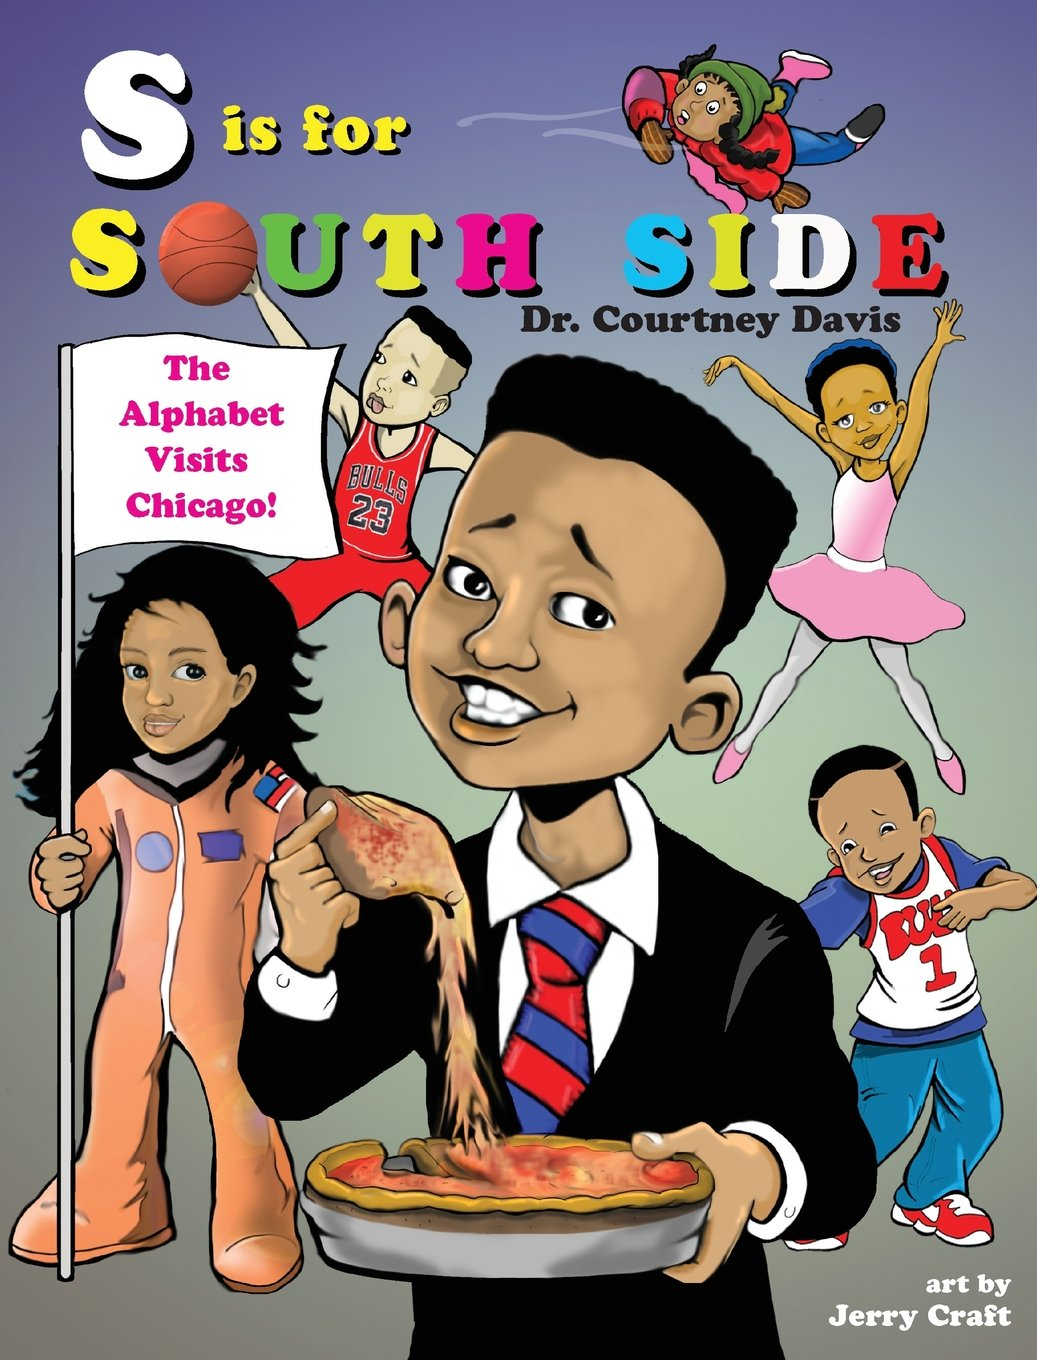 Amazon.com: S Is for South Side: The Alphabet Visits Chicago (9780986222214): Courtney Davis, Jerry Craft: Books